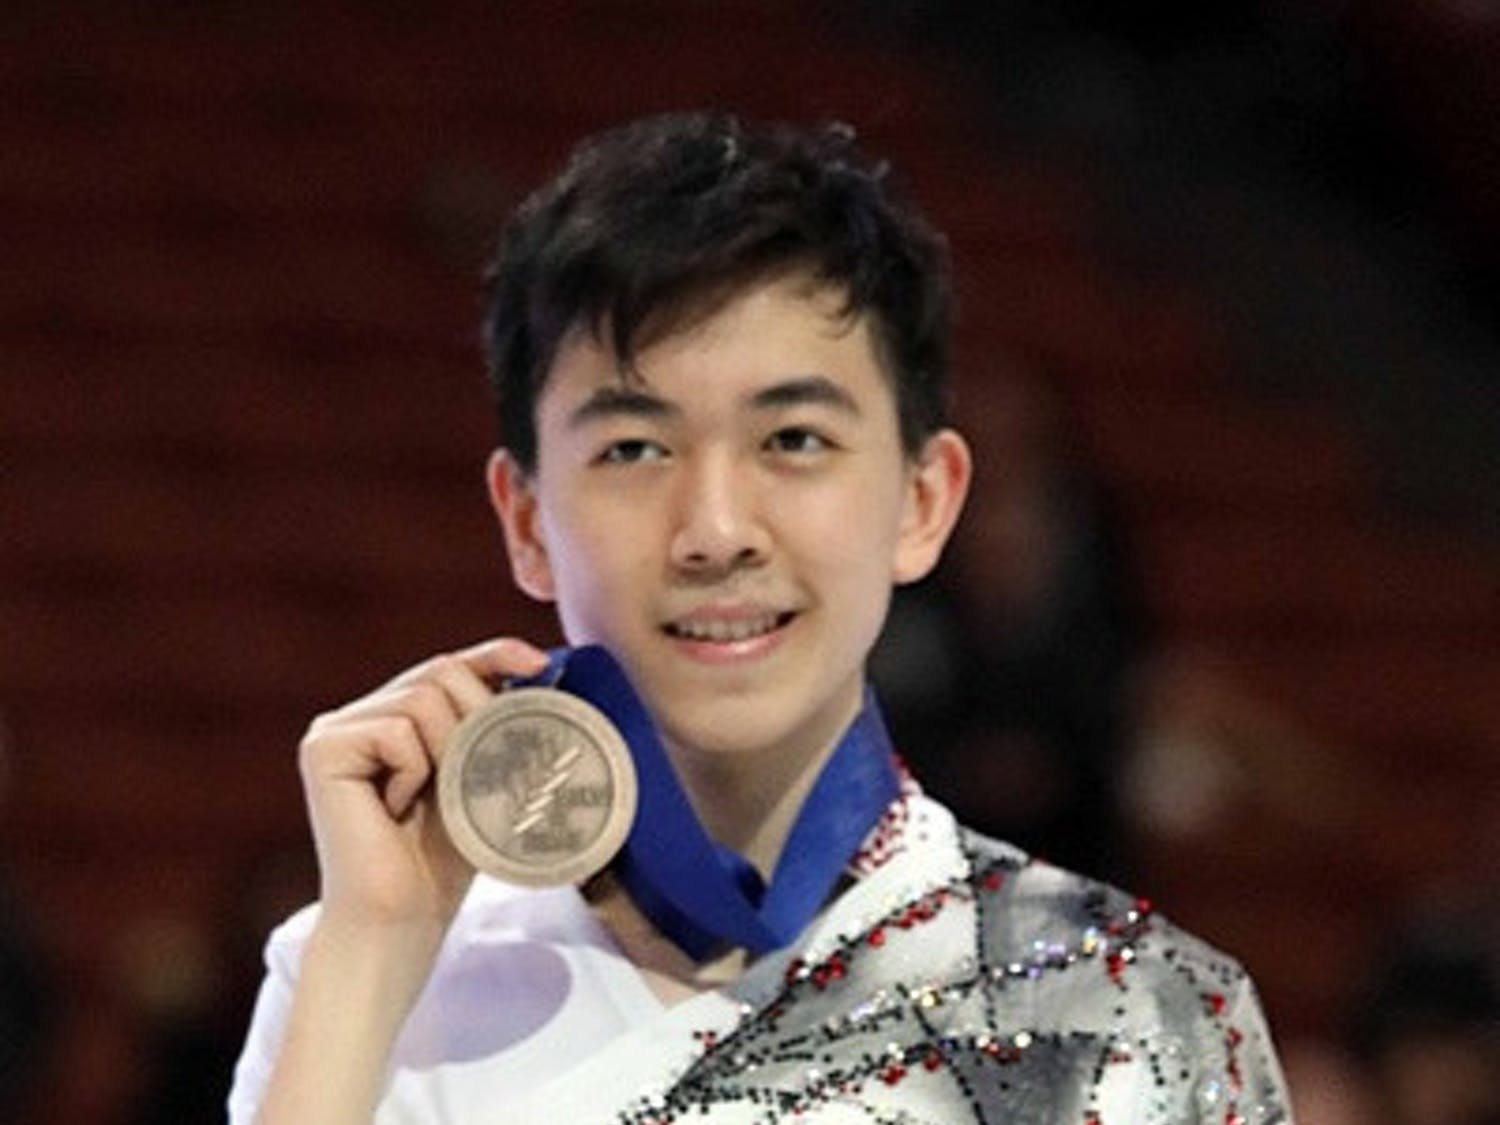 Vincent_Zhou_at_the_Four_Continents_Championships_2019_-_Awarding_ceremony